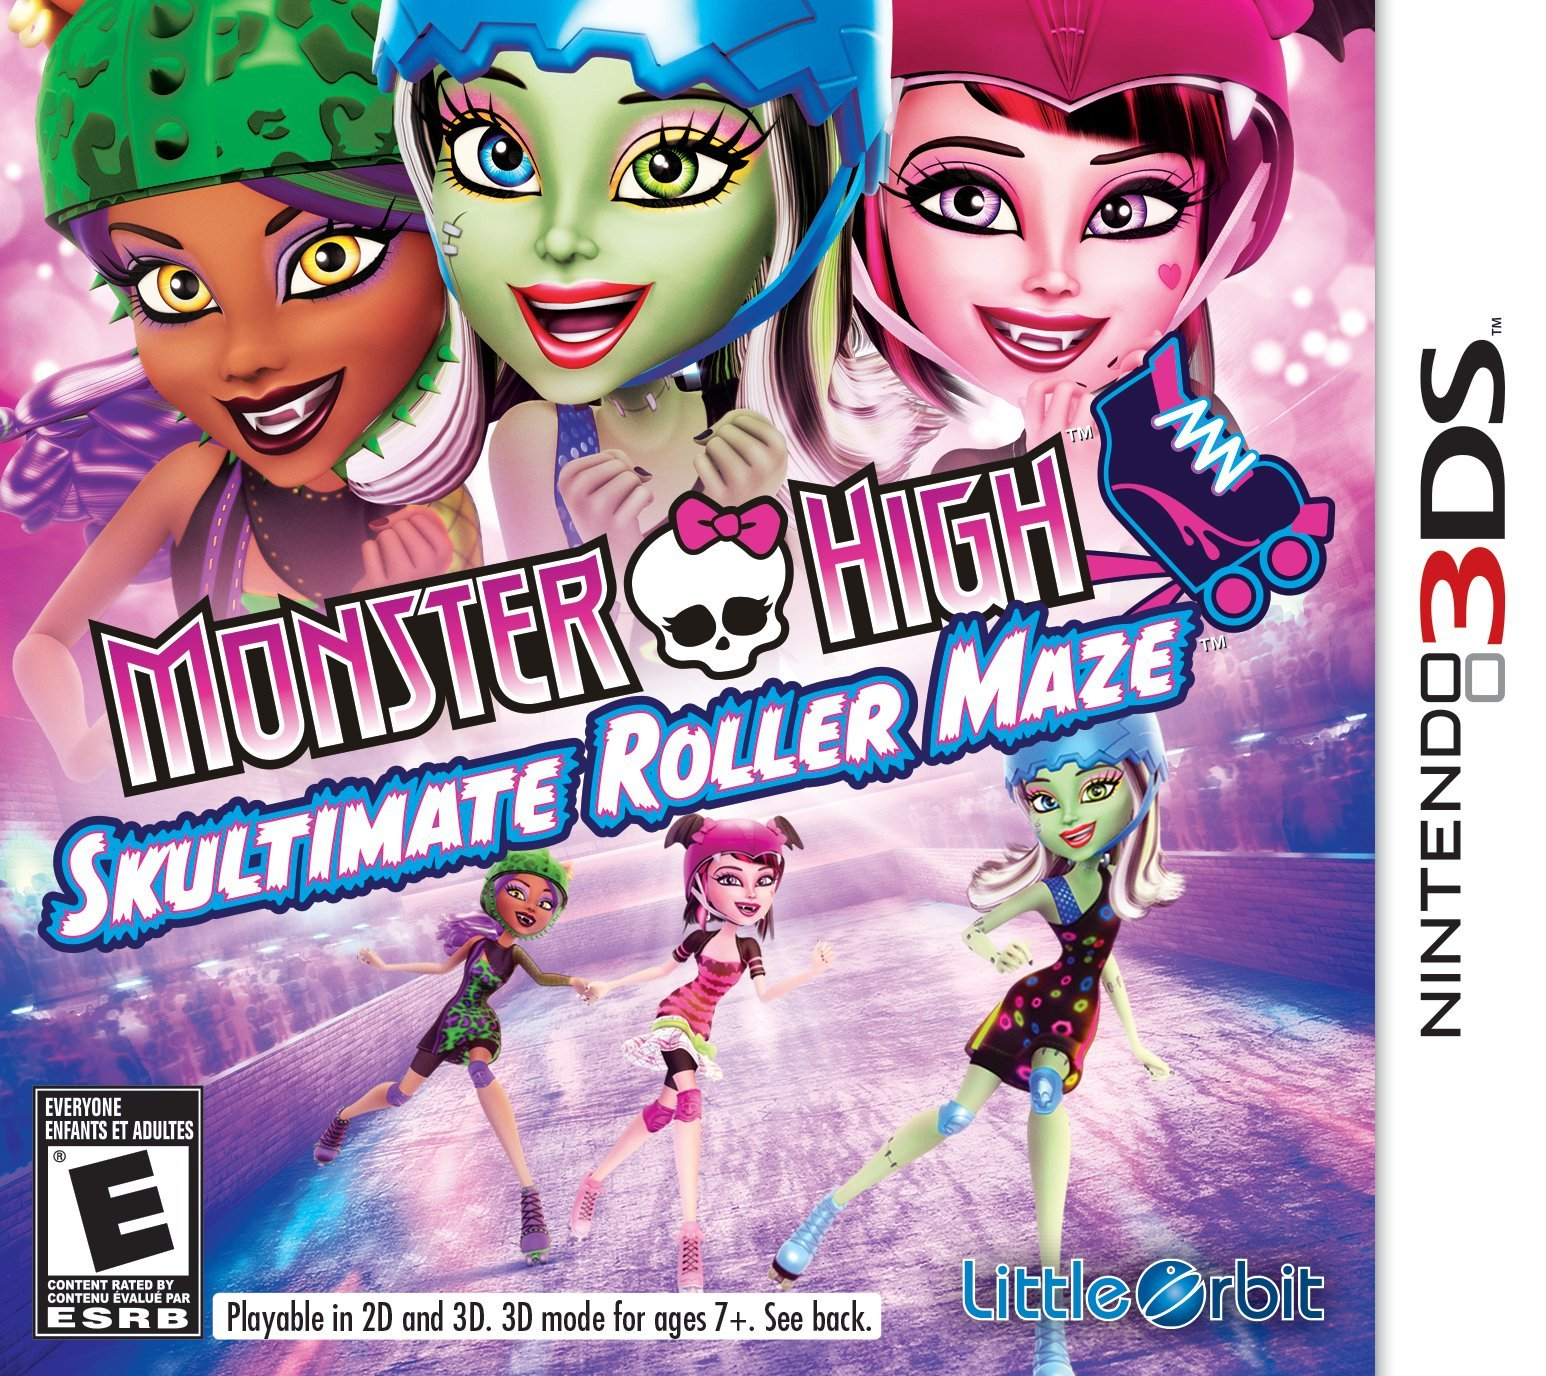 Monster High: Skultimate Roller Maze - Nintendo 3DS